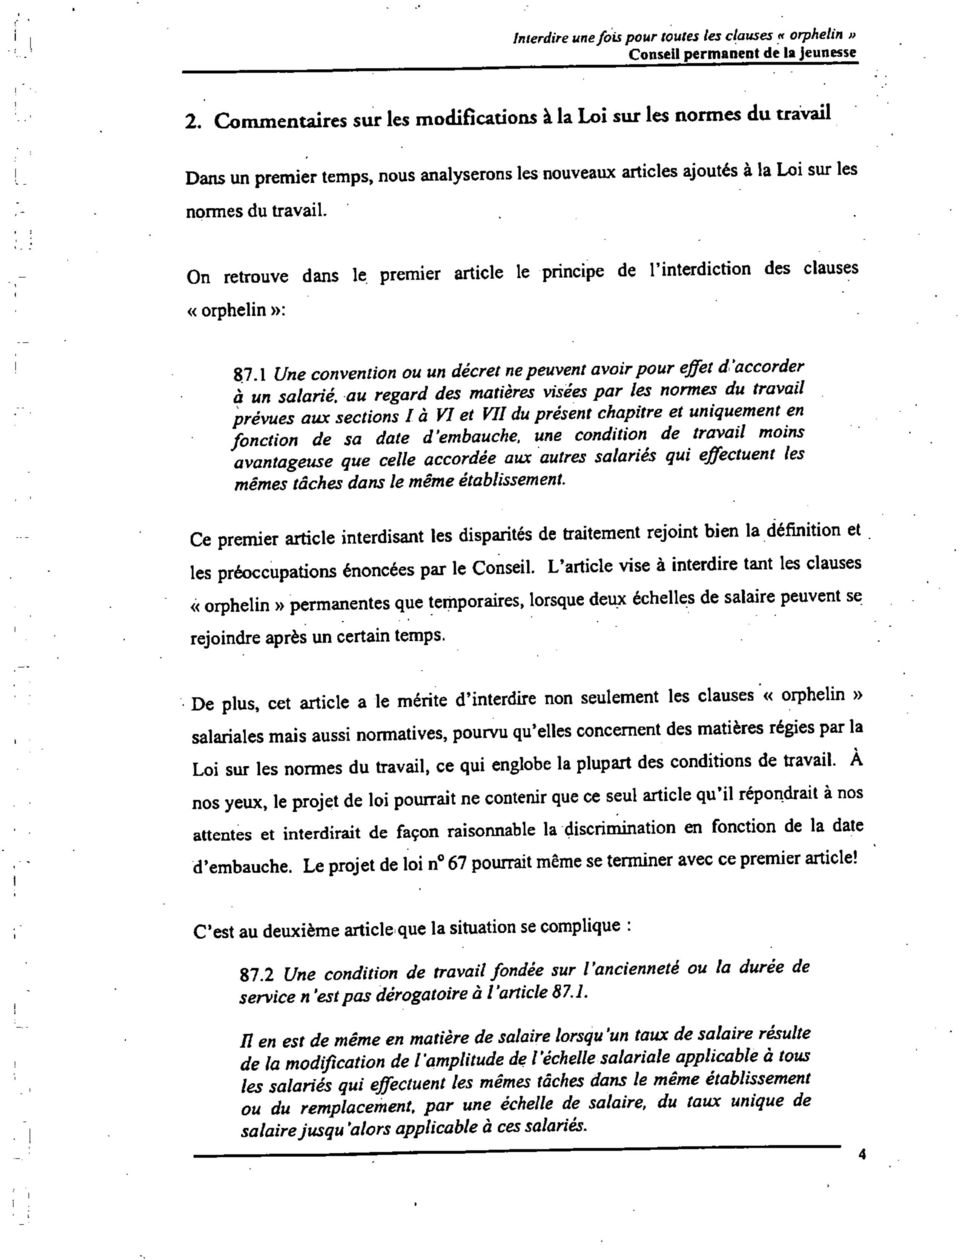 On retrouve dans le premier article le principe de l'interdiction des clauses «orphelin»: 87.